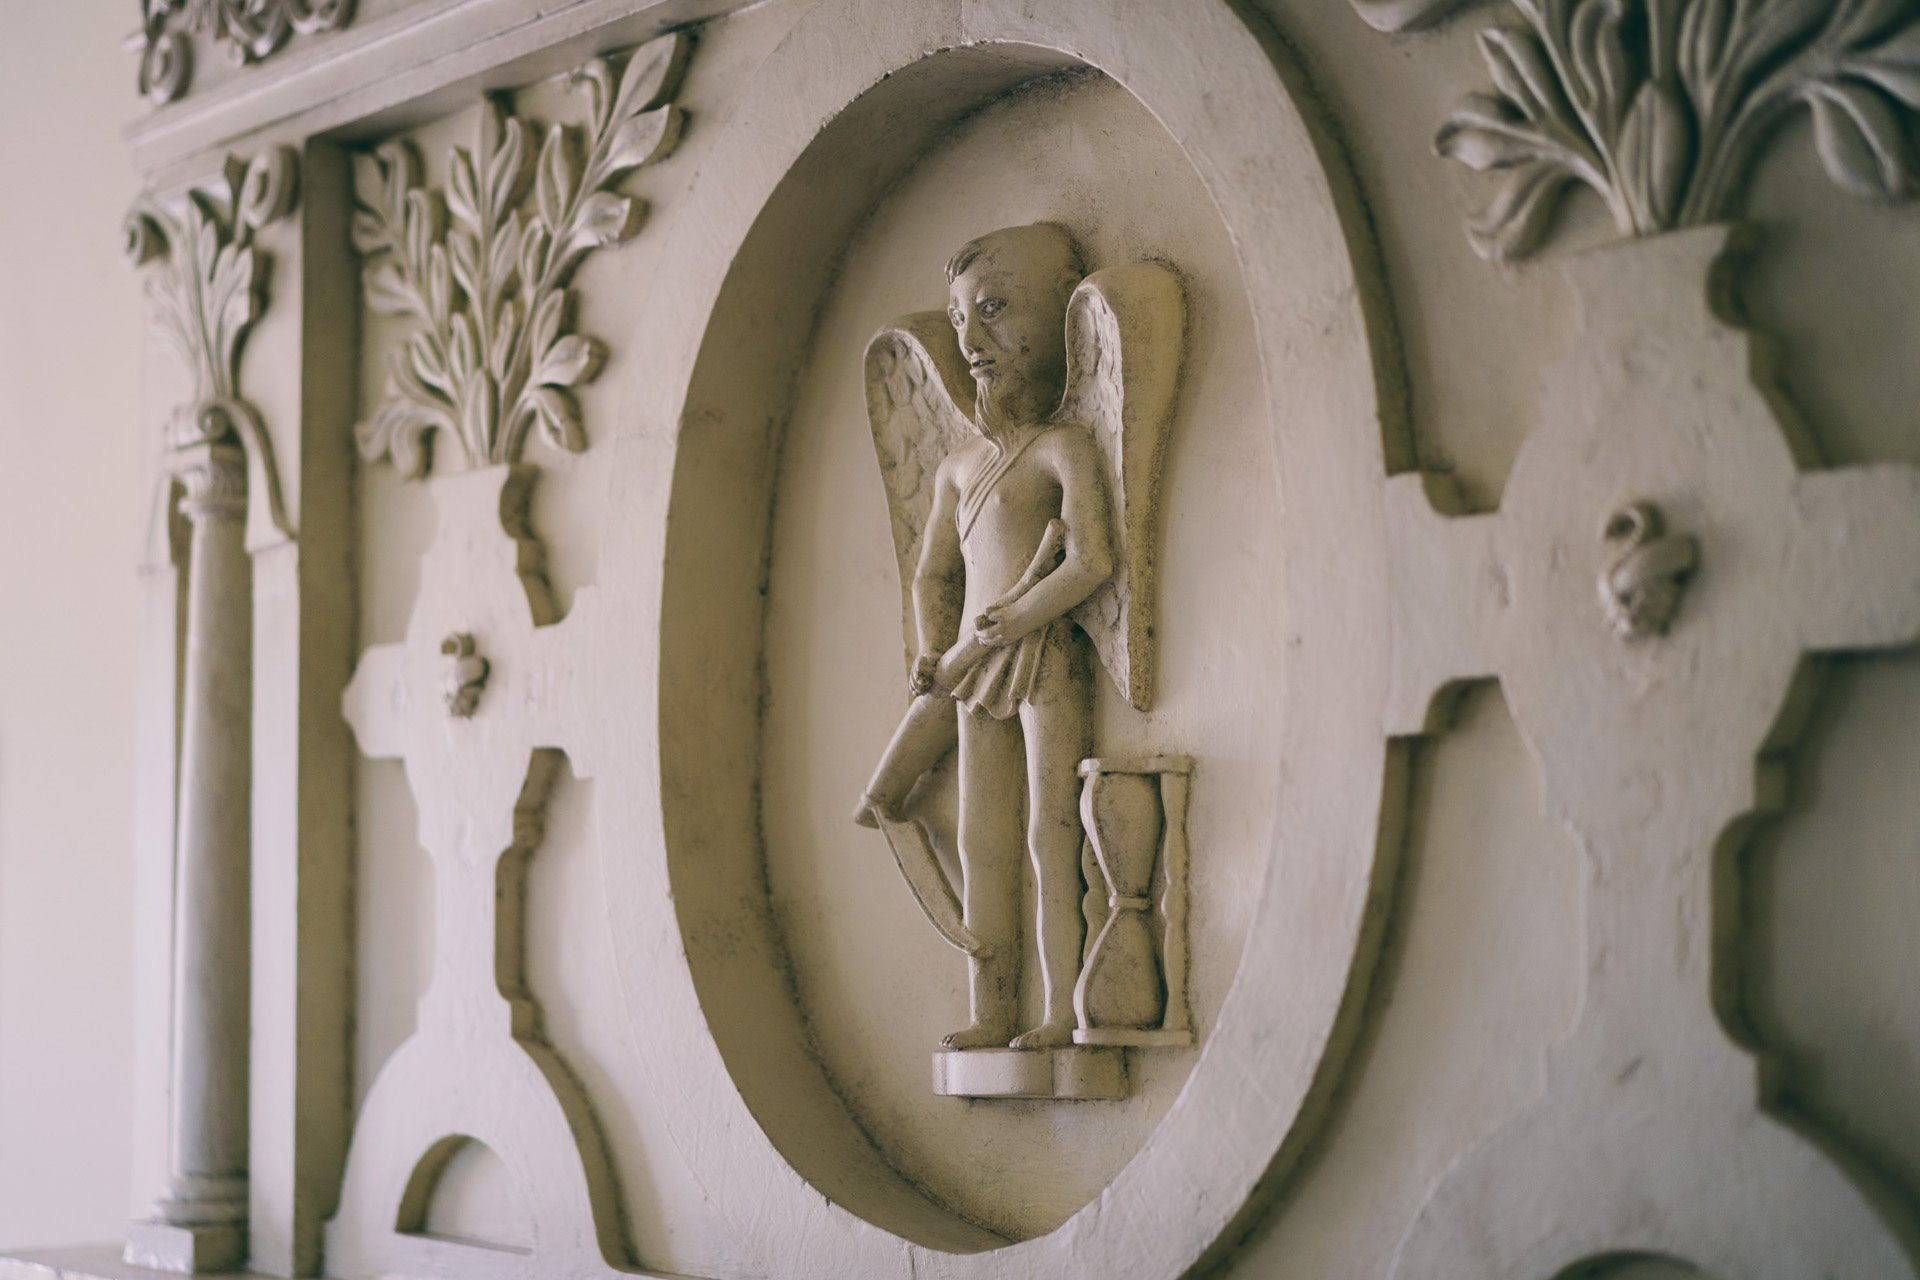 Depiction of Father Time with scythe and hourglass in the fireplace of the time bedroom at wedding venue Elmore Court in Gloucestershire